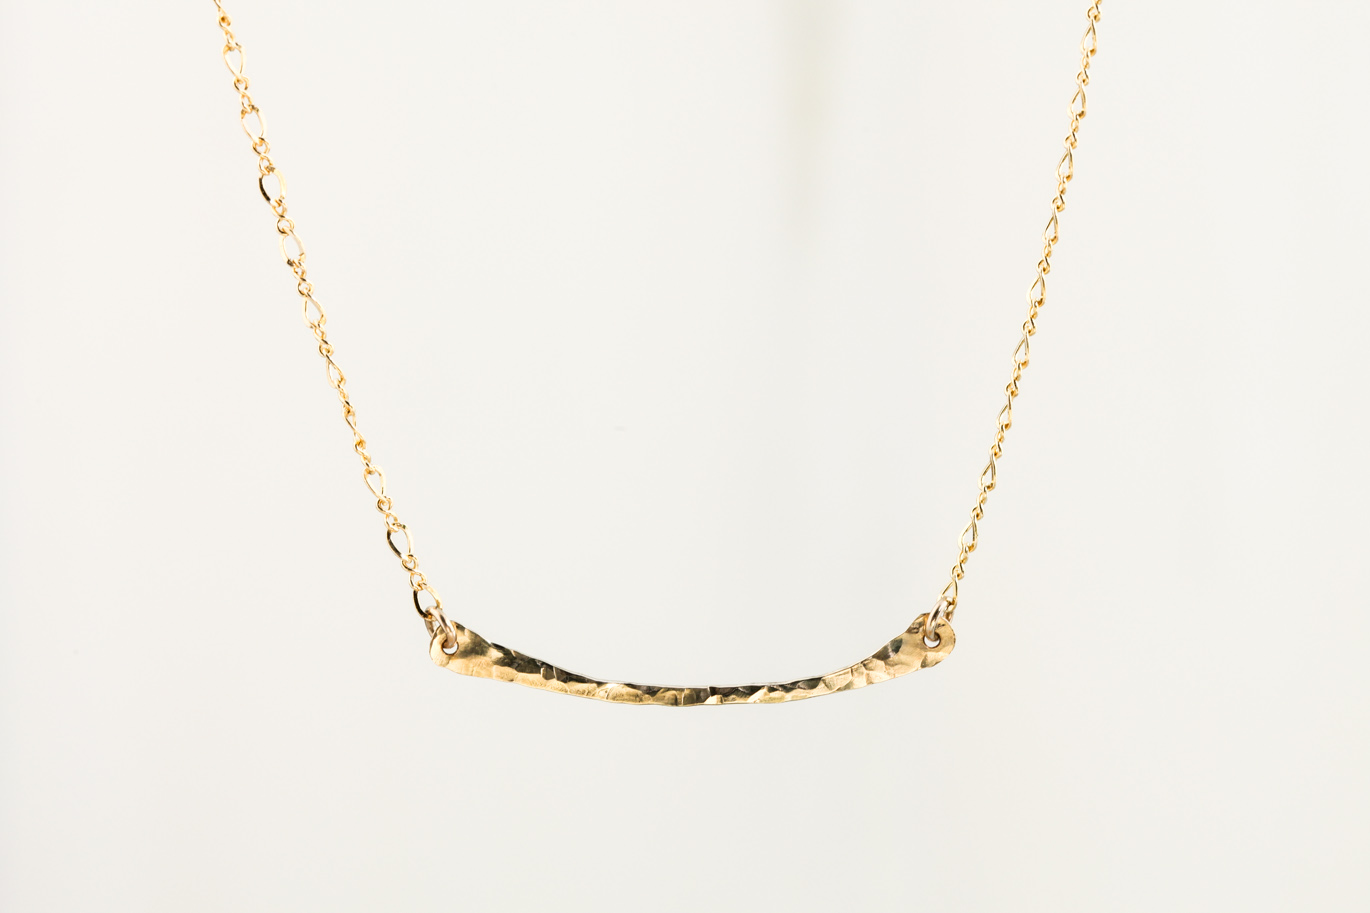 necklace golden zero and large necklaces nashville made simple in tn freshie collections renew jewelry web